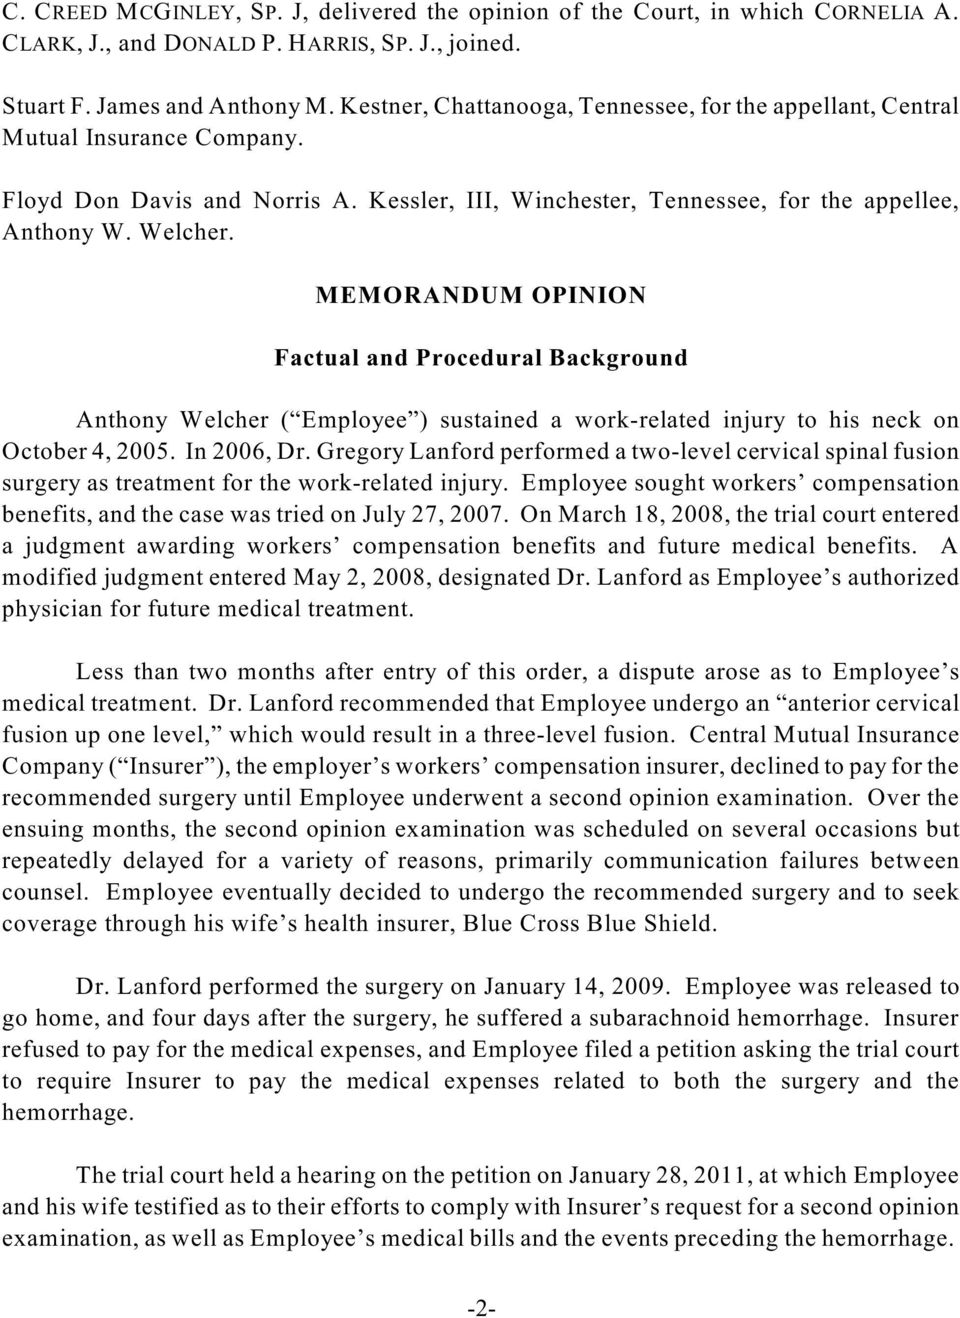 MEMORANDUM OPINION Factual and Procedural Background Anthony Welcher ( Employee ) sustained a work-related injury to his neck on October 4, 2005. In 2006, Dr.